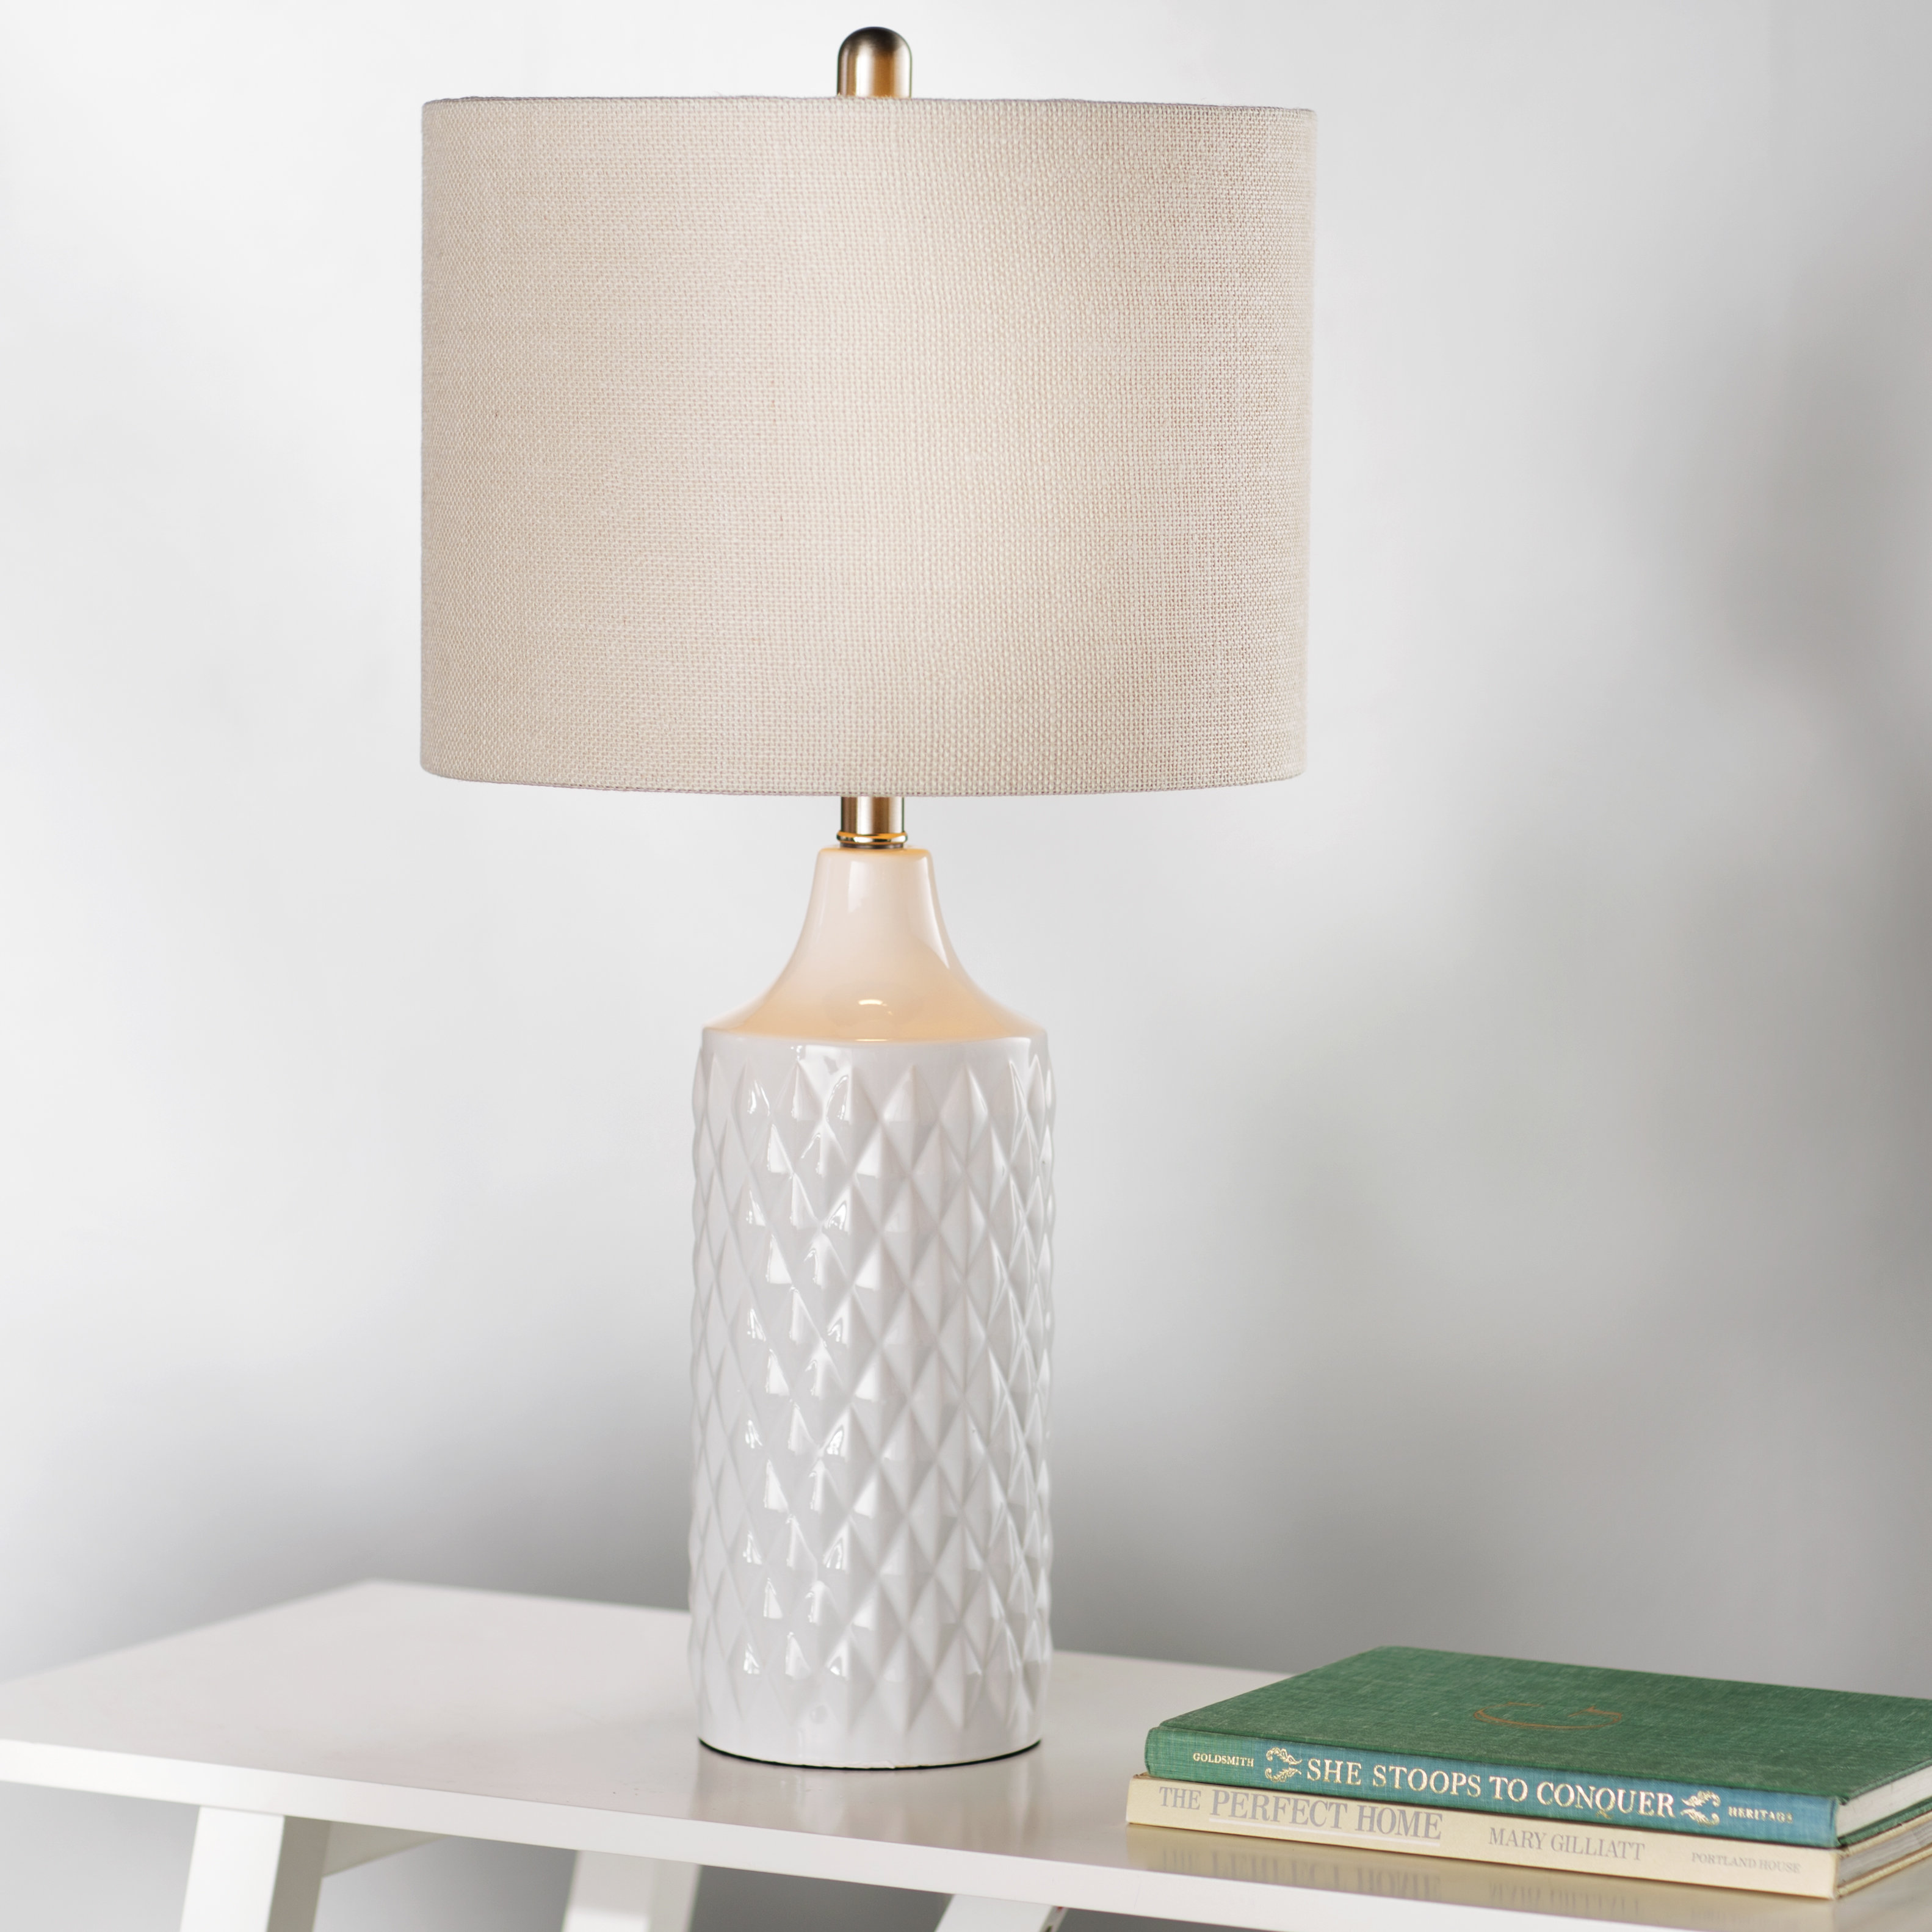 beachcrest home melbourne beach table lamp reviews accent lighting seattle threshold gold drum patio loveseat cover marble end tables nate berkus coffee brass farm style sofa